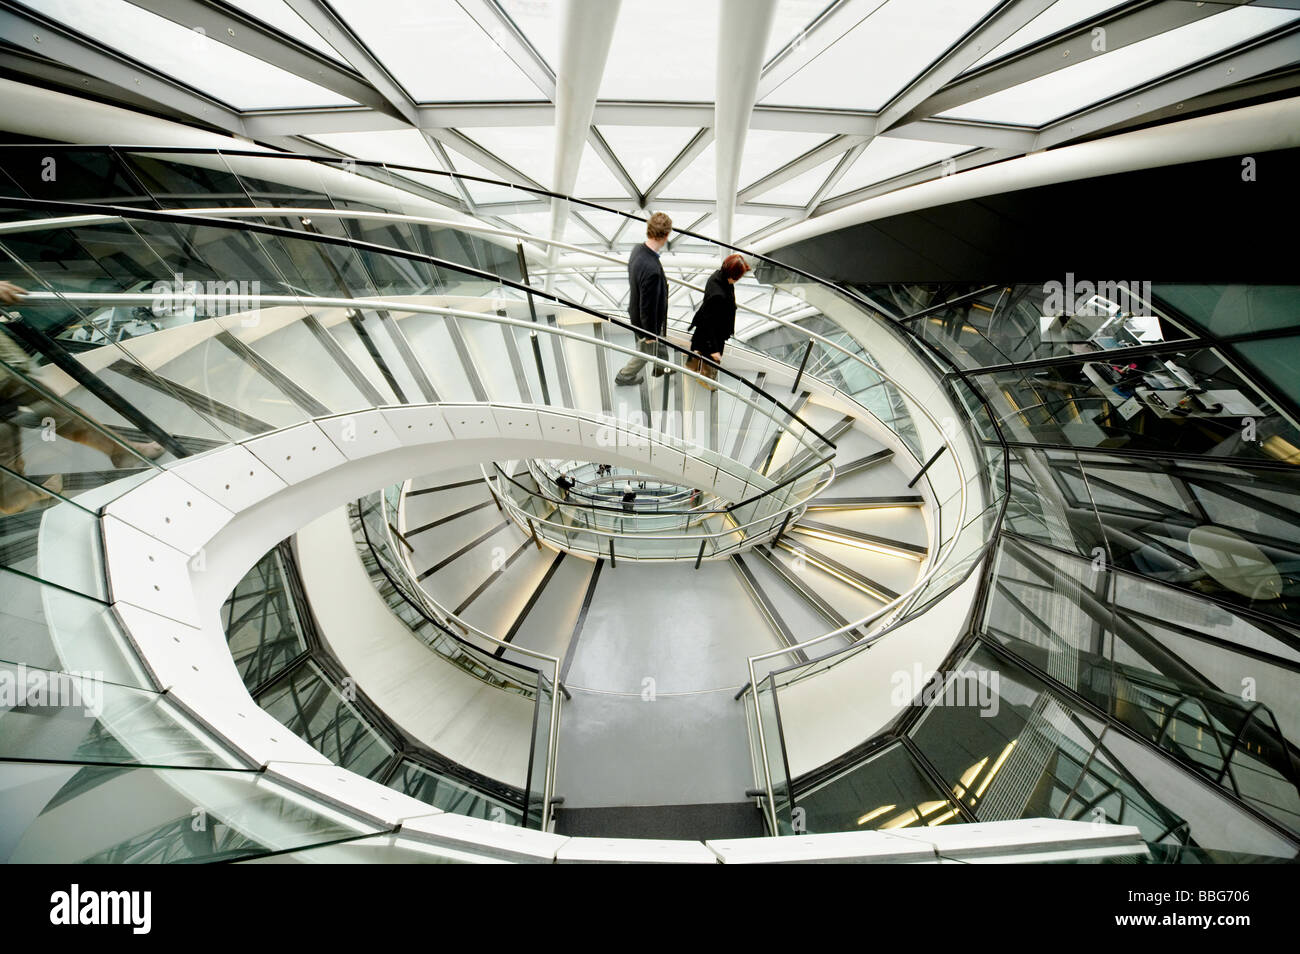 Interior atrium & Spiral staircase of GLA City Hall Mayors office Greater London Authority London England UK - Stock Image